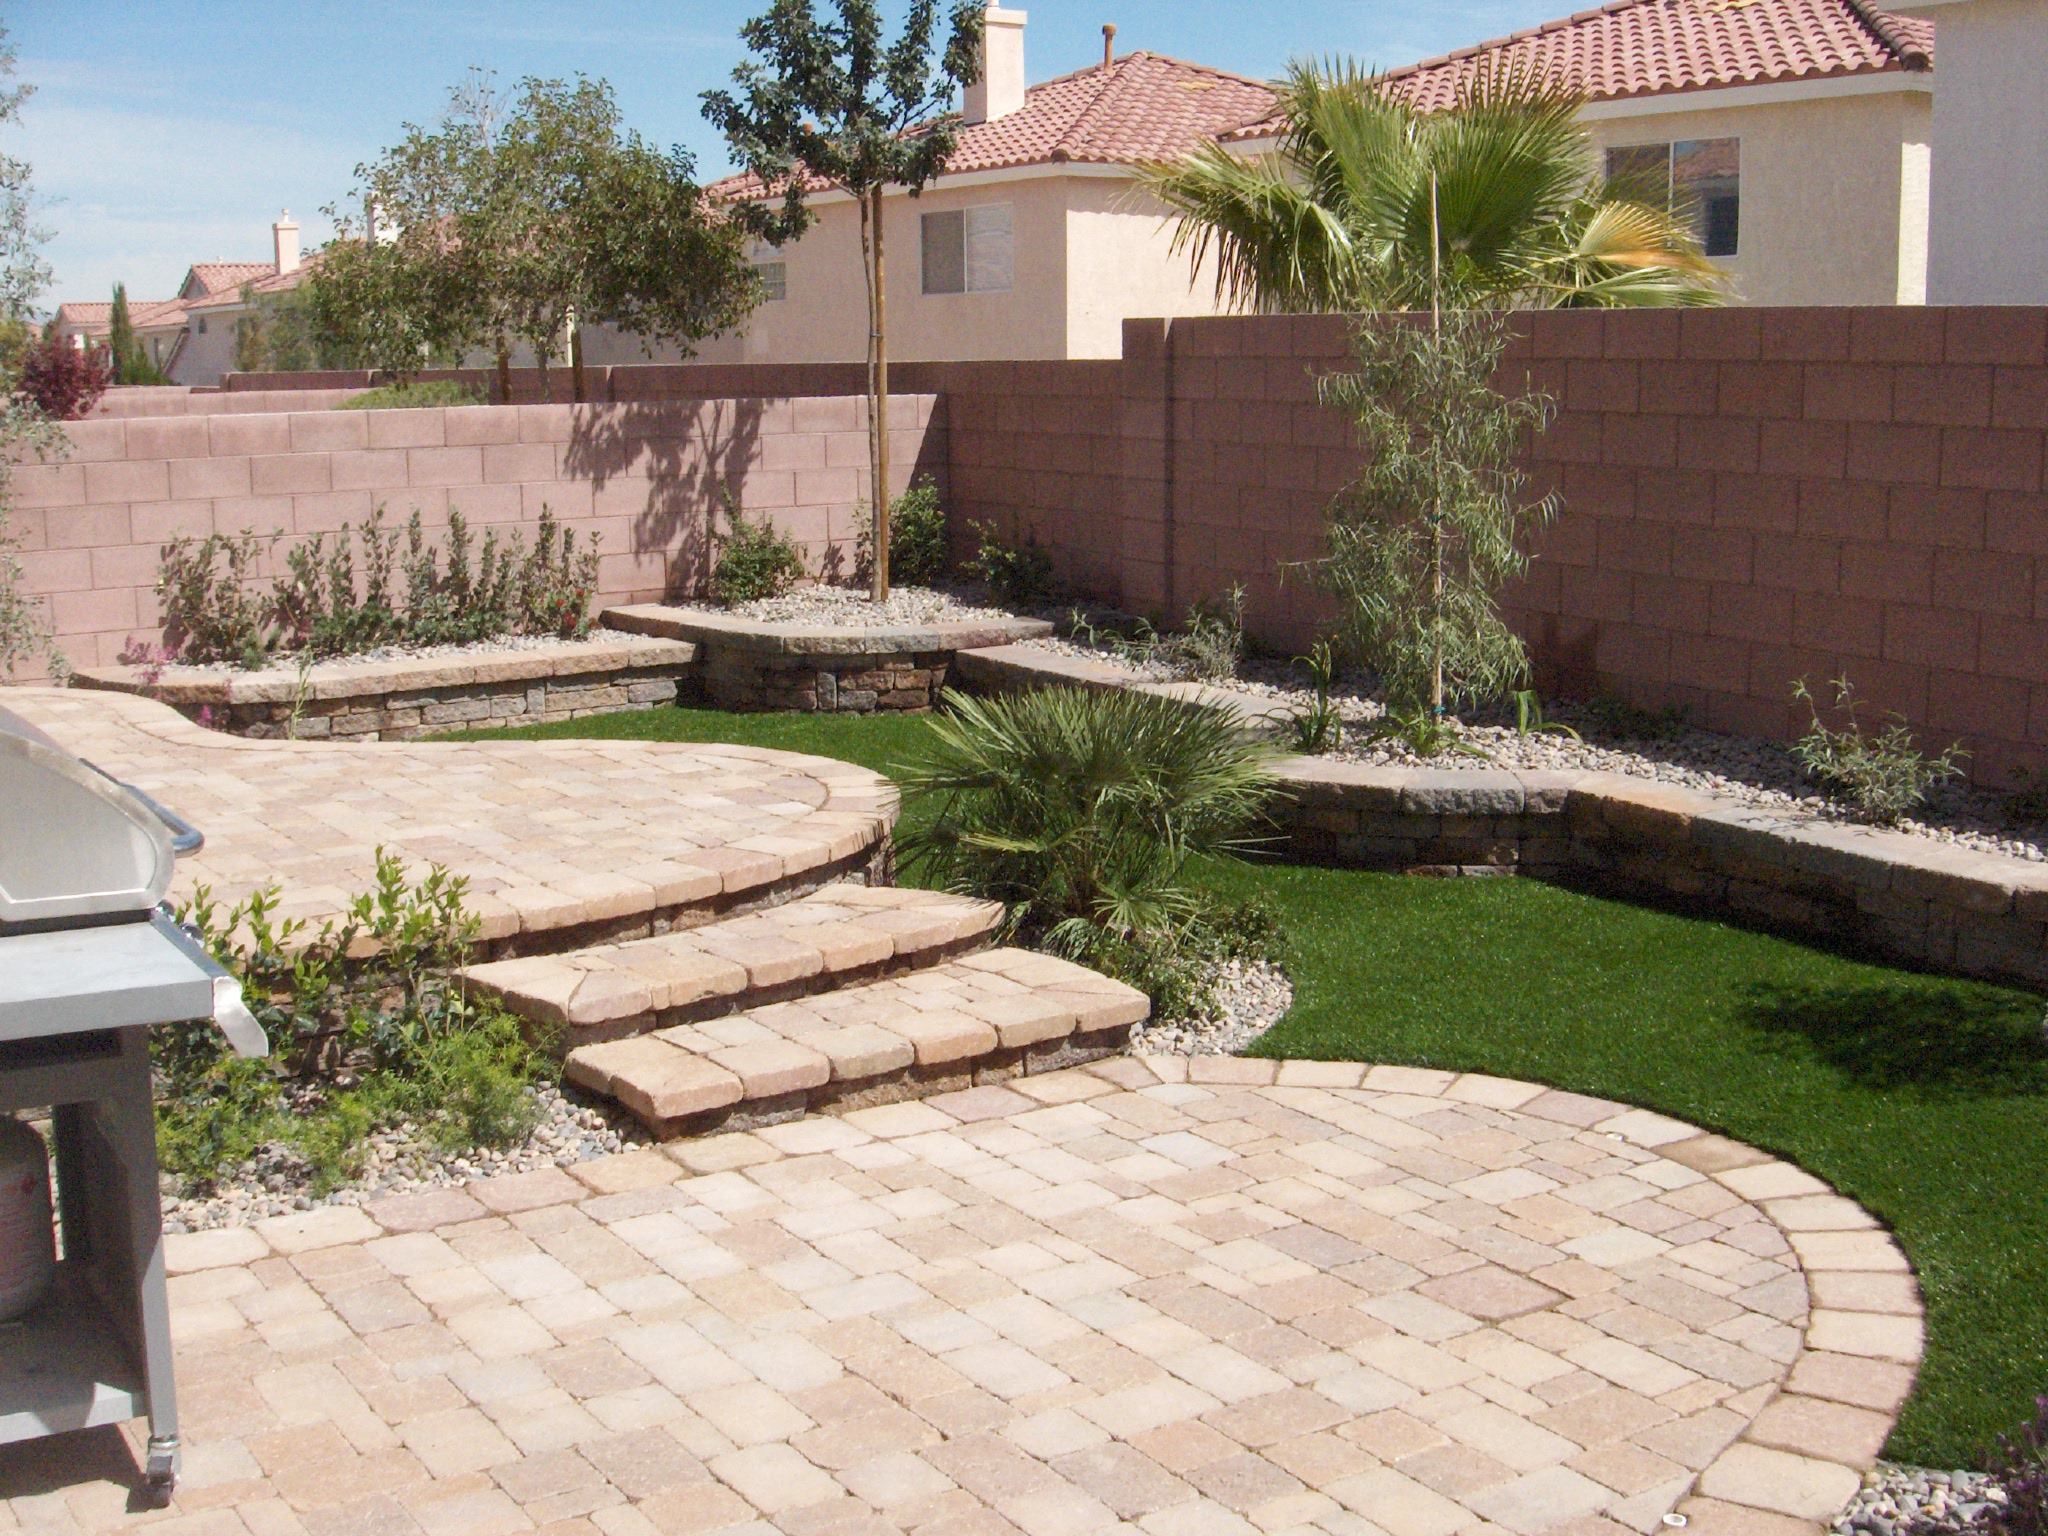 Living water lawn and garden inc las vegas nv 89149 angies list - Small backyard landscaping designs ...